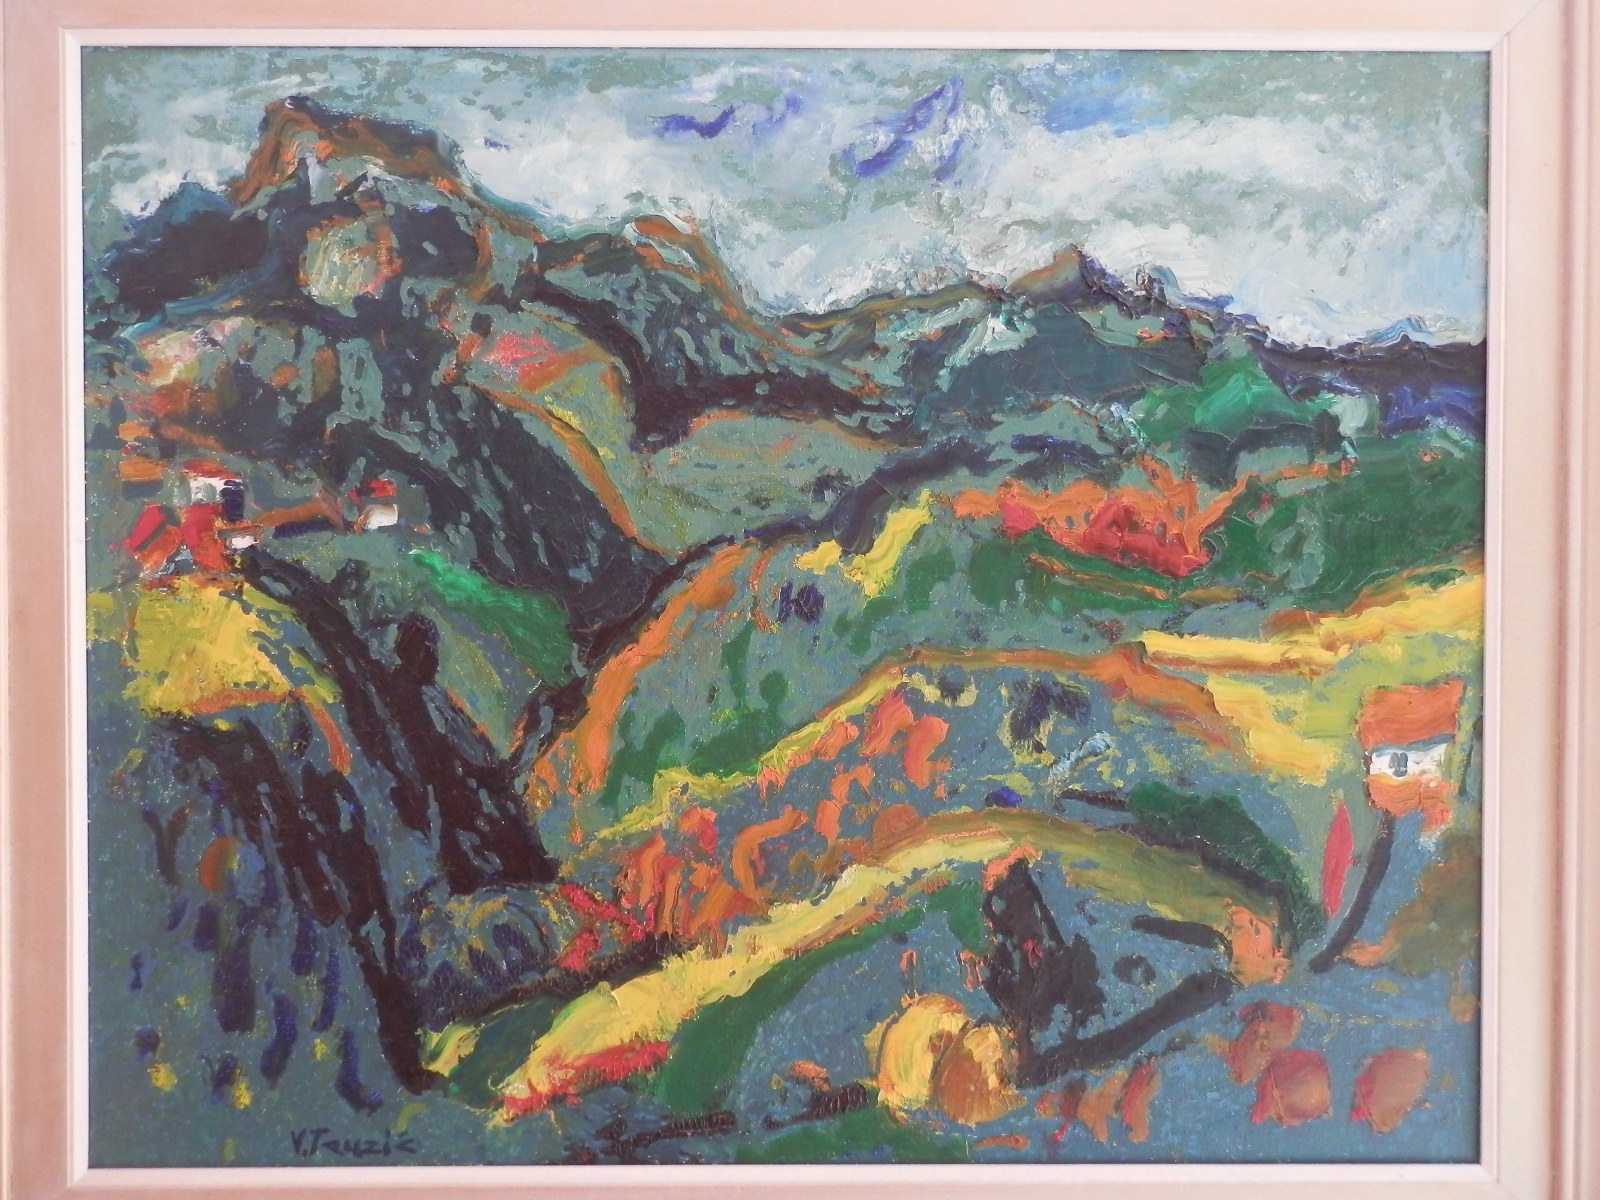 Br. 26 - Ulje na  pltnu - 60x75 <br> 	No. 26 - Oil paint - 60x75